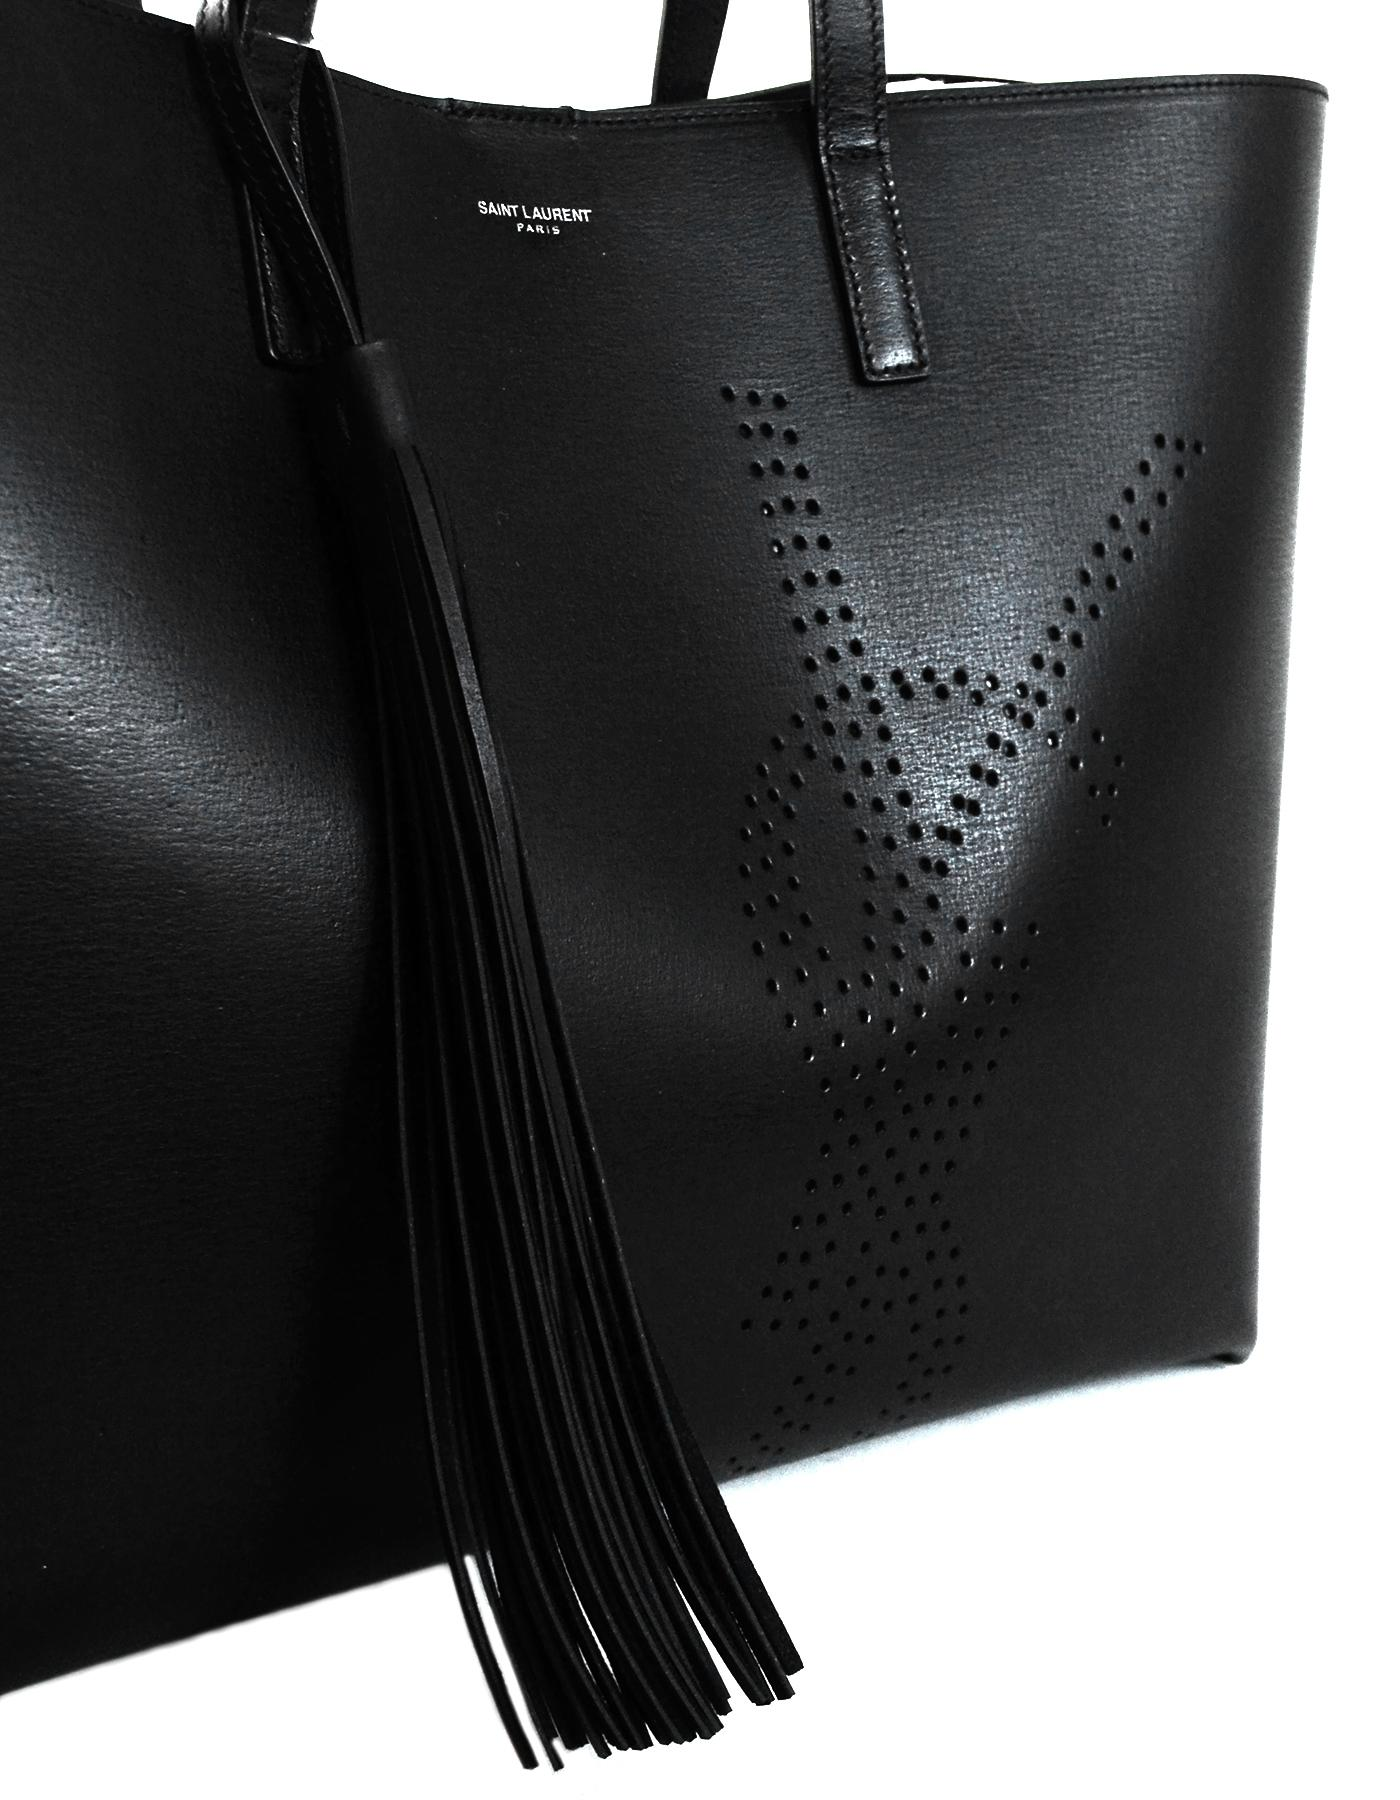 75c54c724eef Yves Saint Laurent Black Leather YSL Perforated Shopping Tote Bag W  Tassel  For Sale at 1stdibs